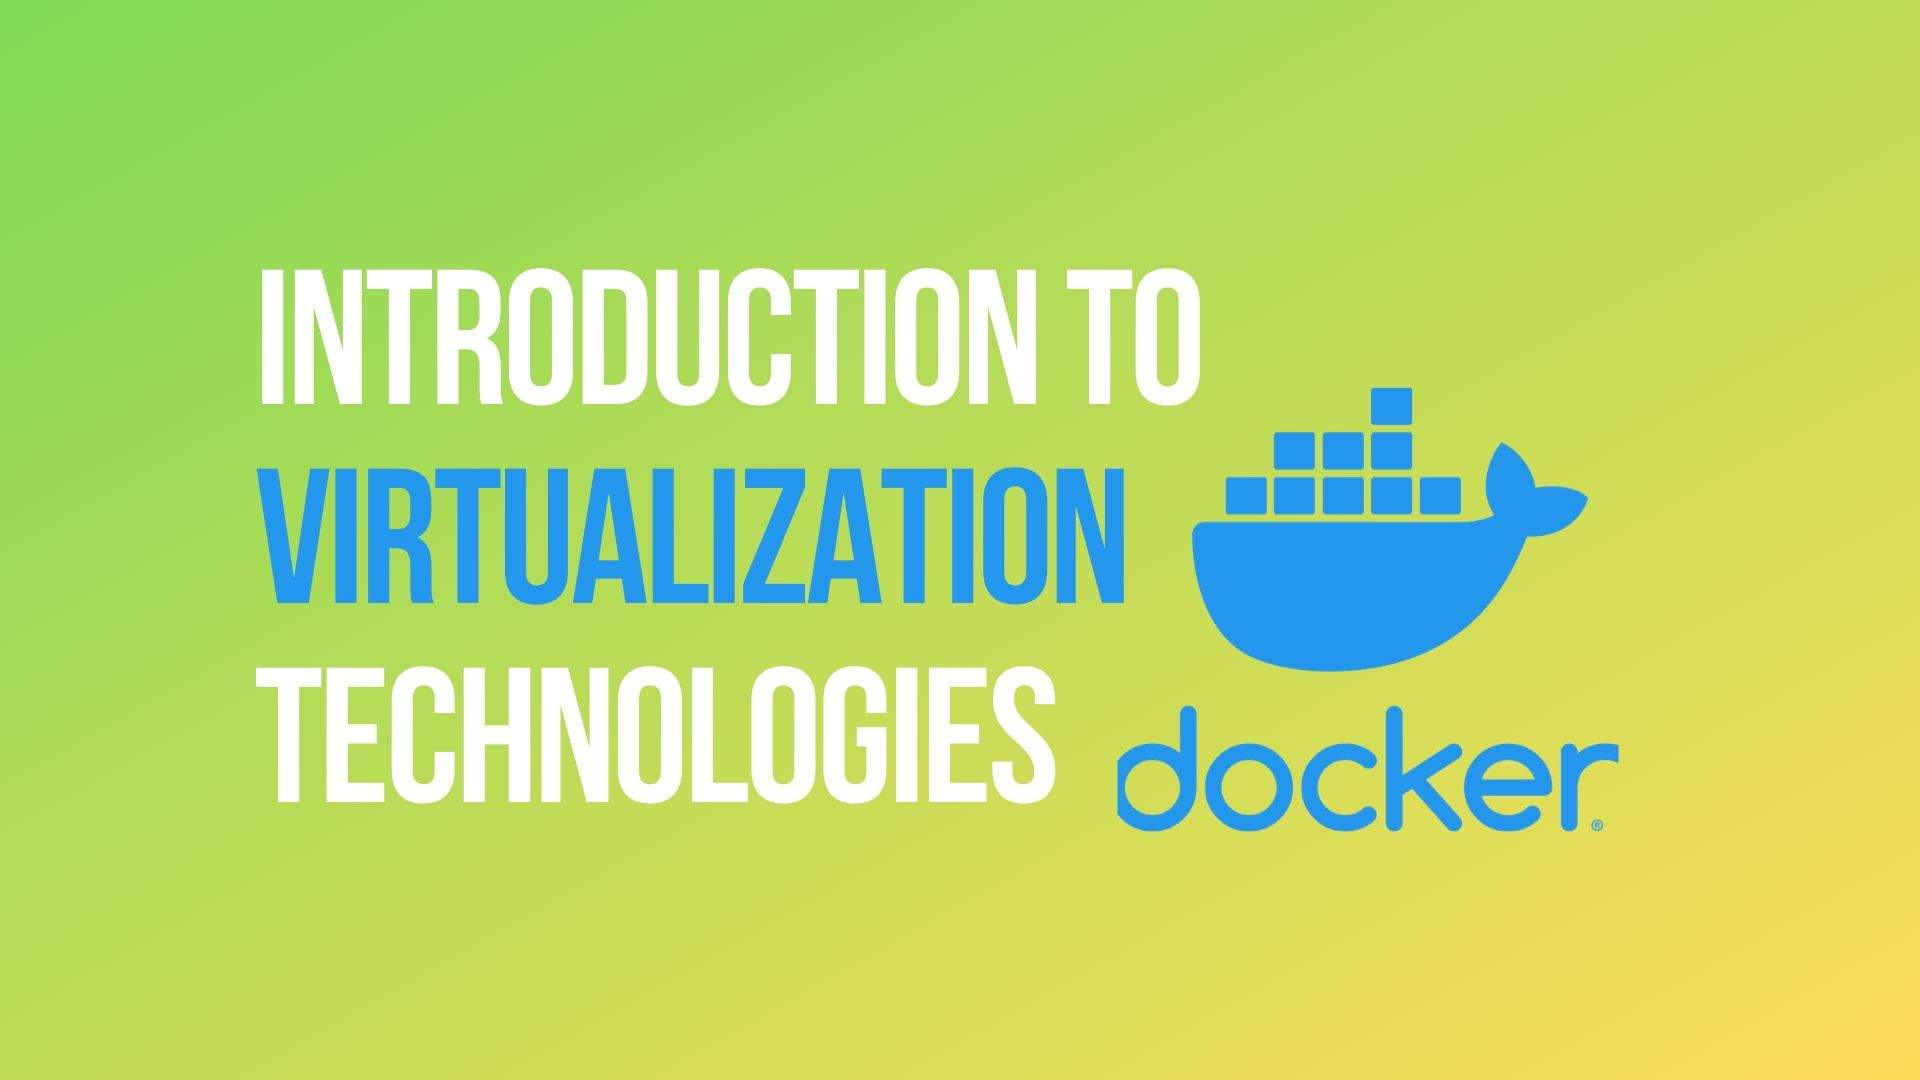 Introduction to Virtualization Technology